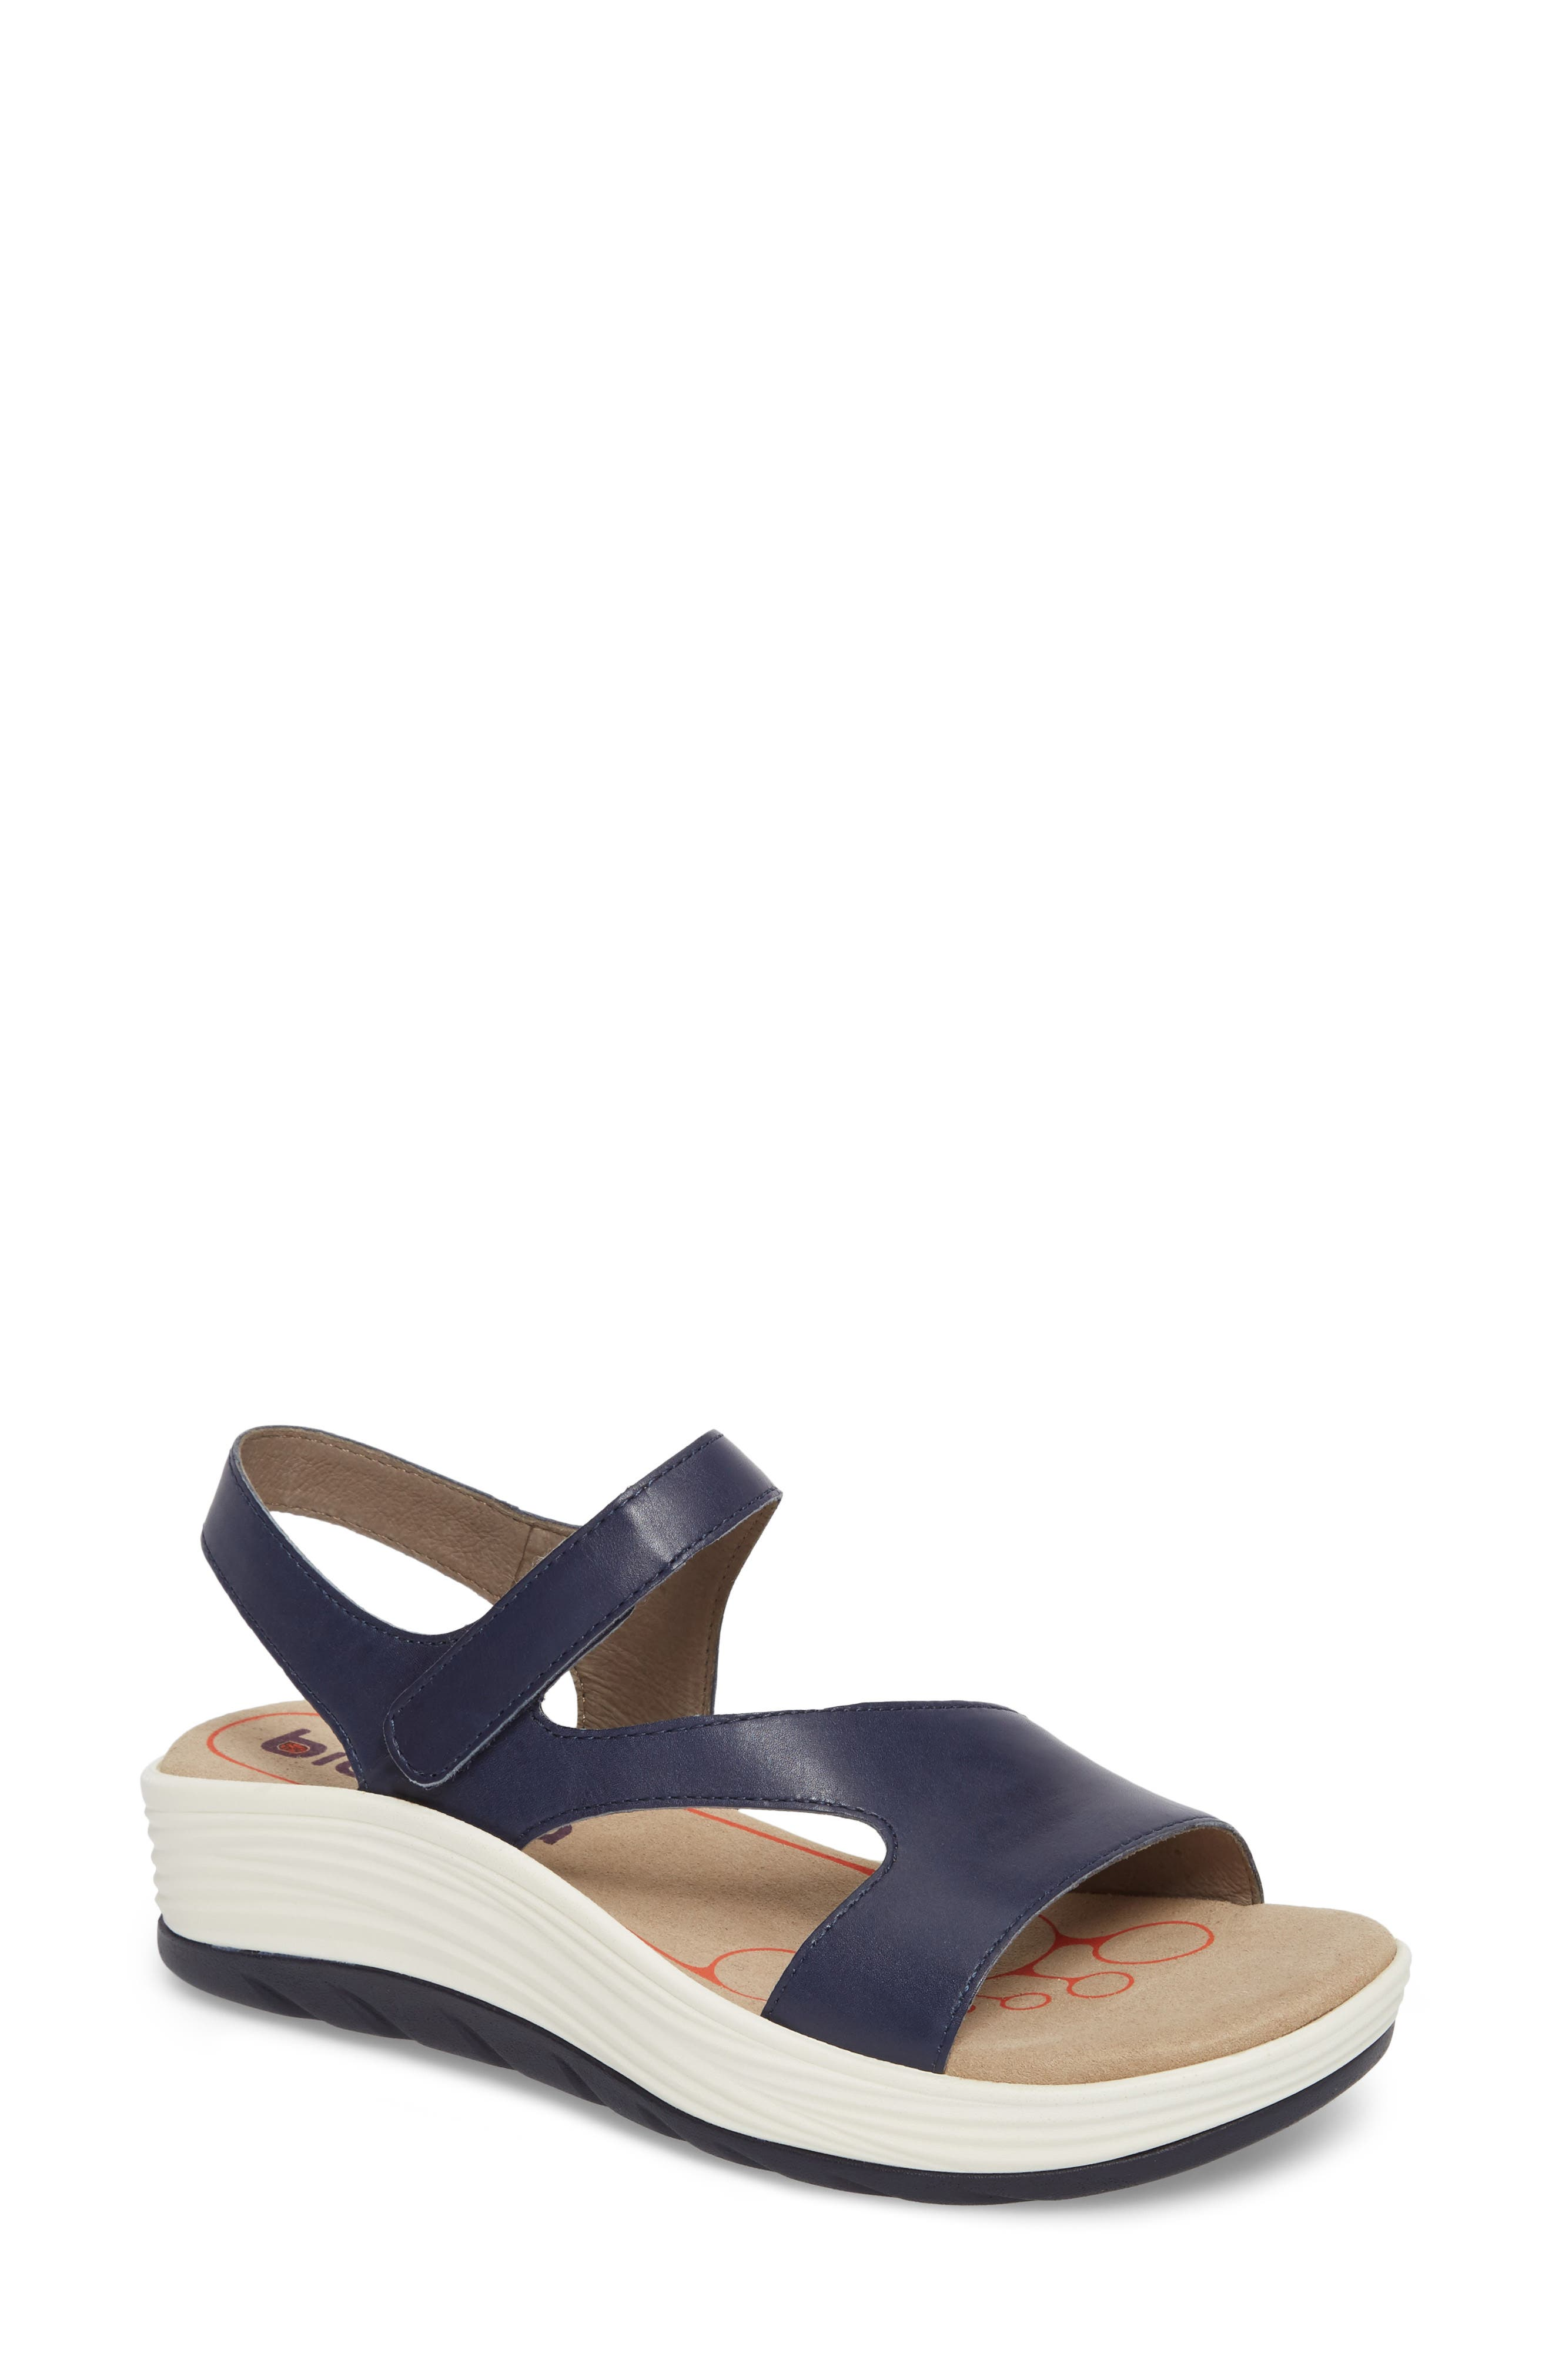 Cybele Platform Sandal,                         Main,                         color, Peacoat Navy Leather